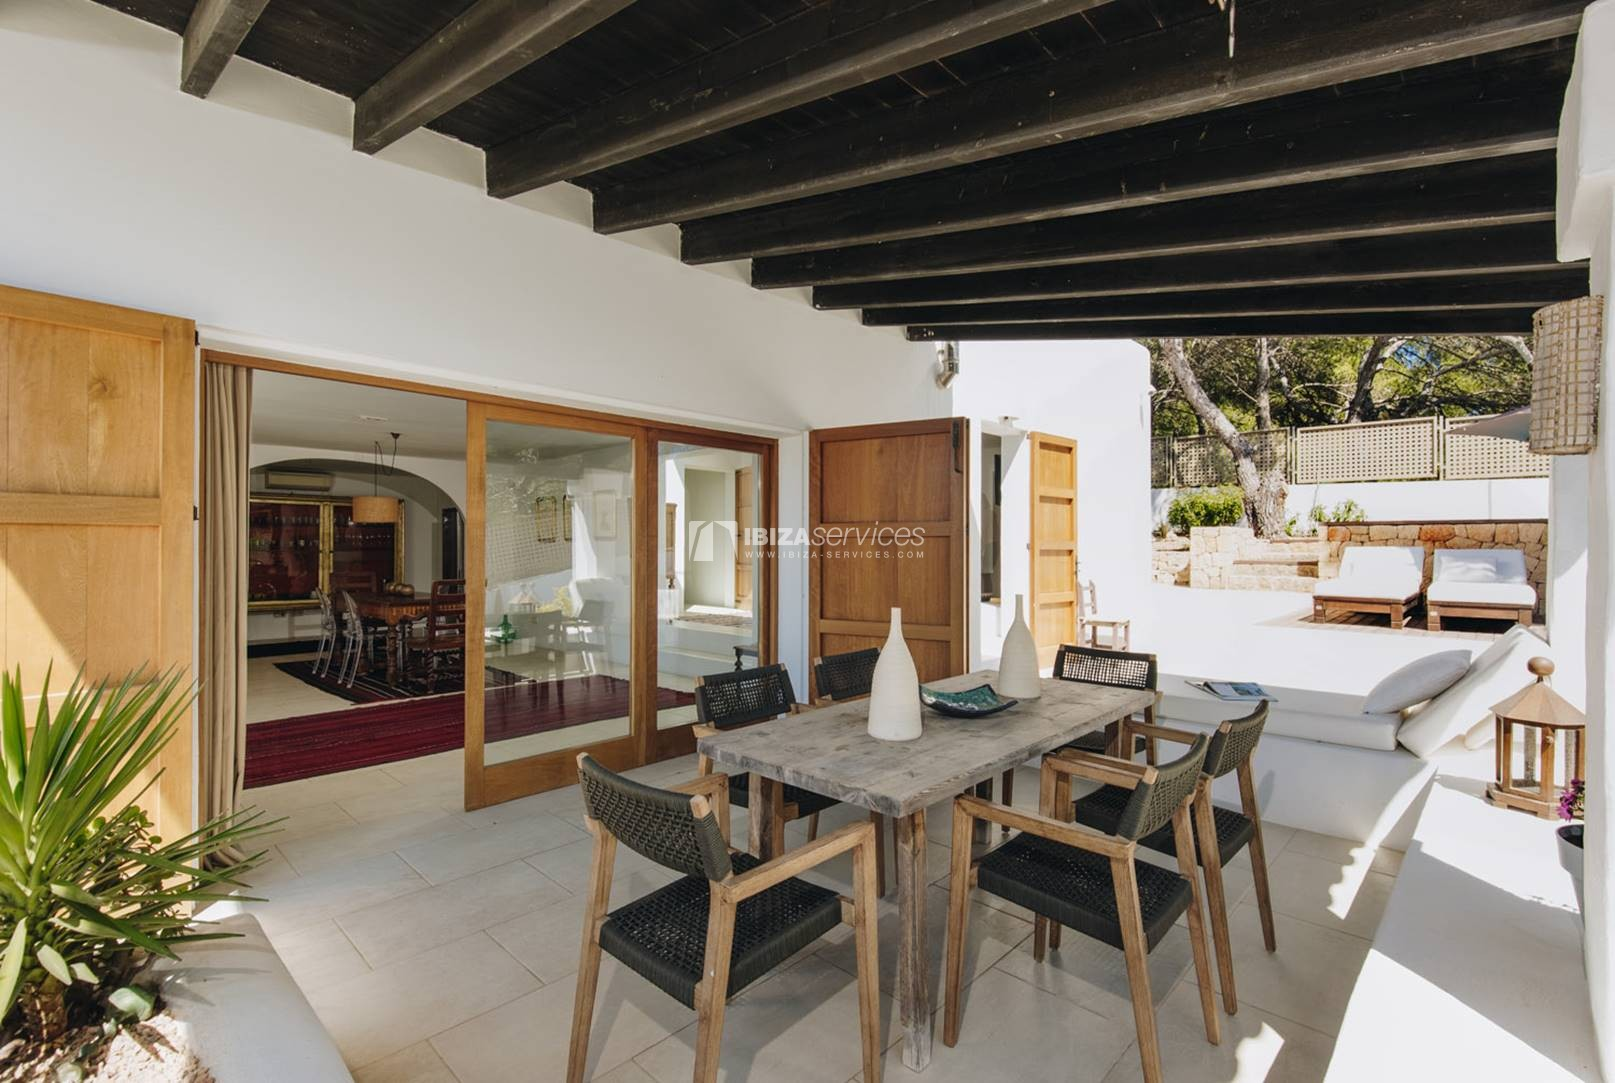 Monthly summer rental Talamanca 3 bedroom house for rent perspectiva 80